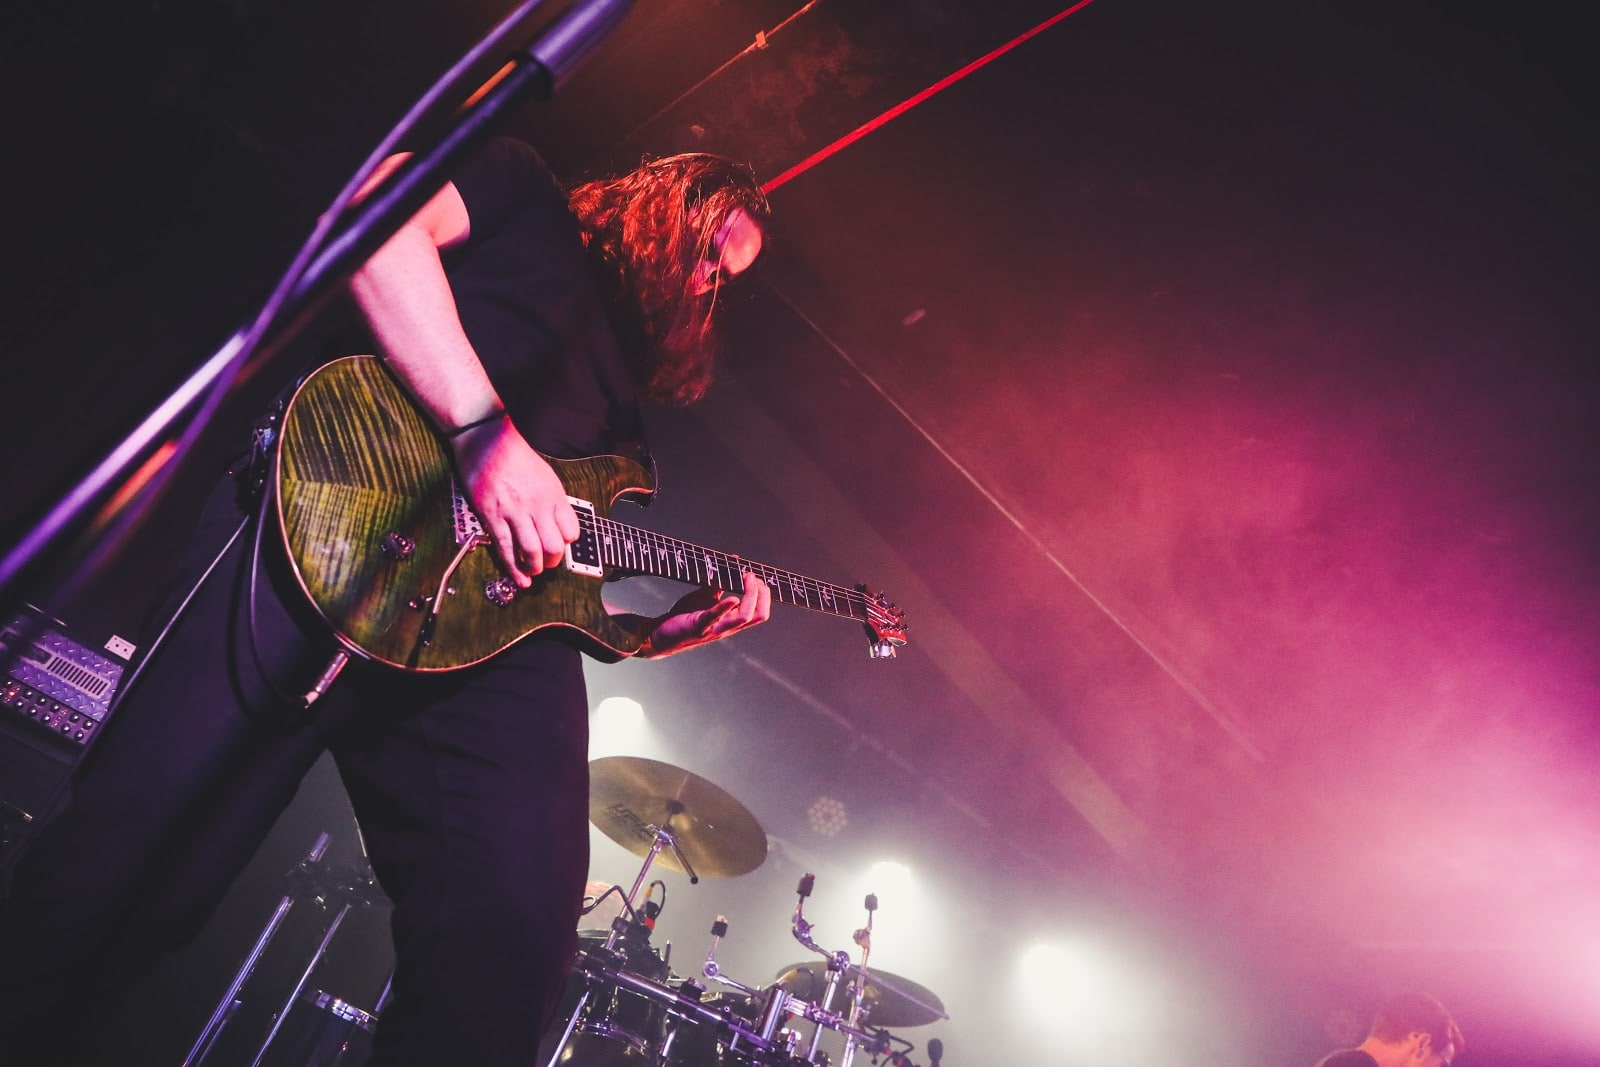 5 Things I wish I knew when I first started playing Guitar/Music – by Cam Bird, Guitar Instructor from Melbourne Australia.